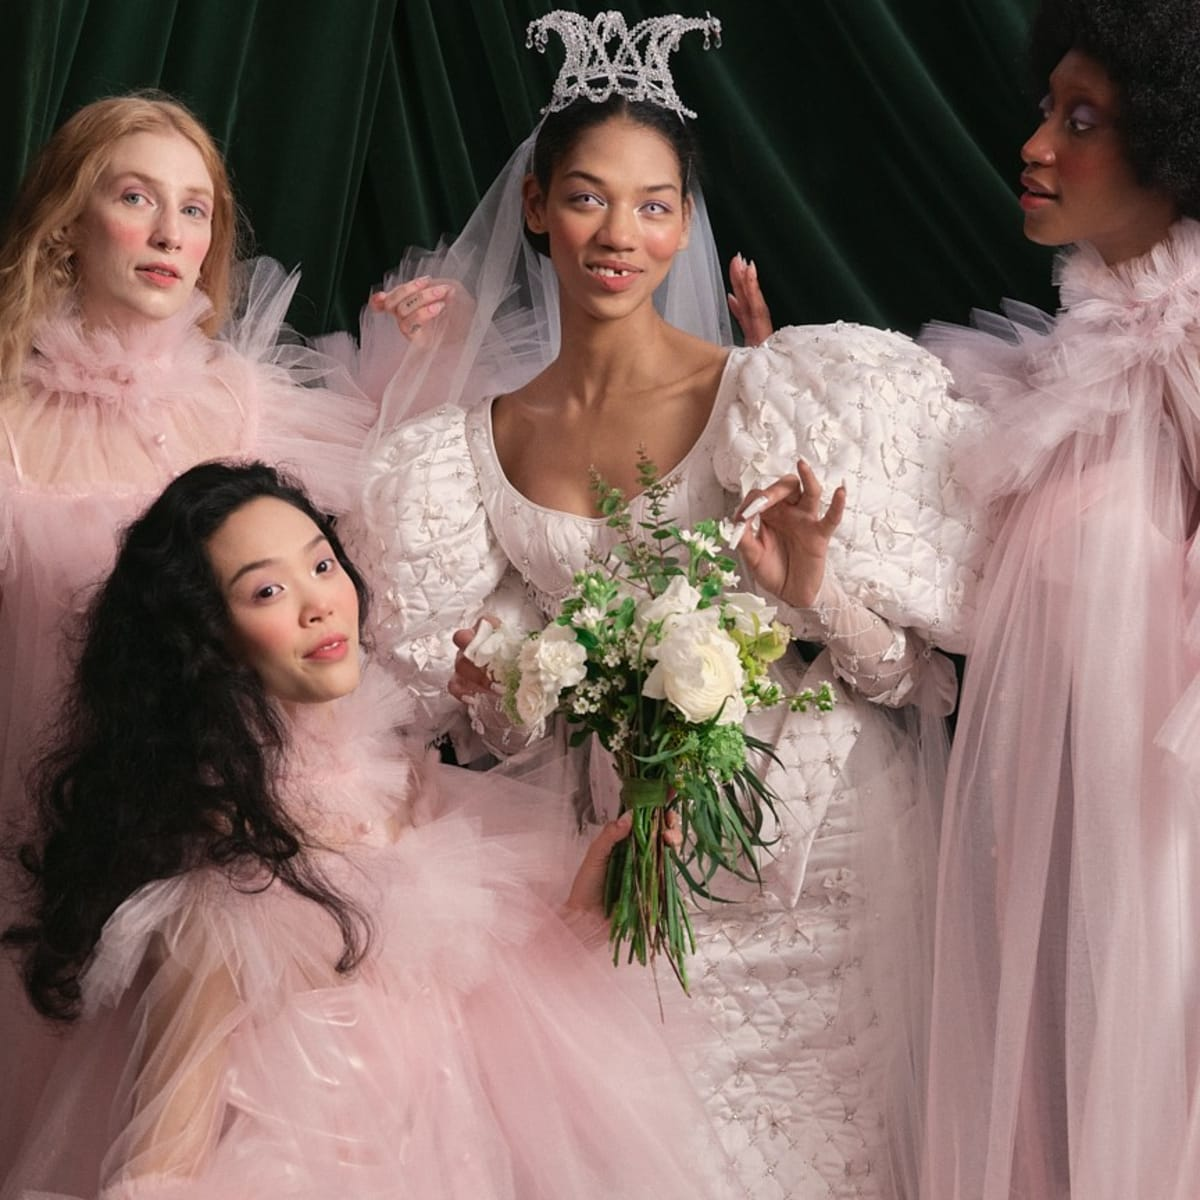 The 20 Top Bridal Trends For Spring 20 Include 'Bridgerton ...